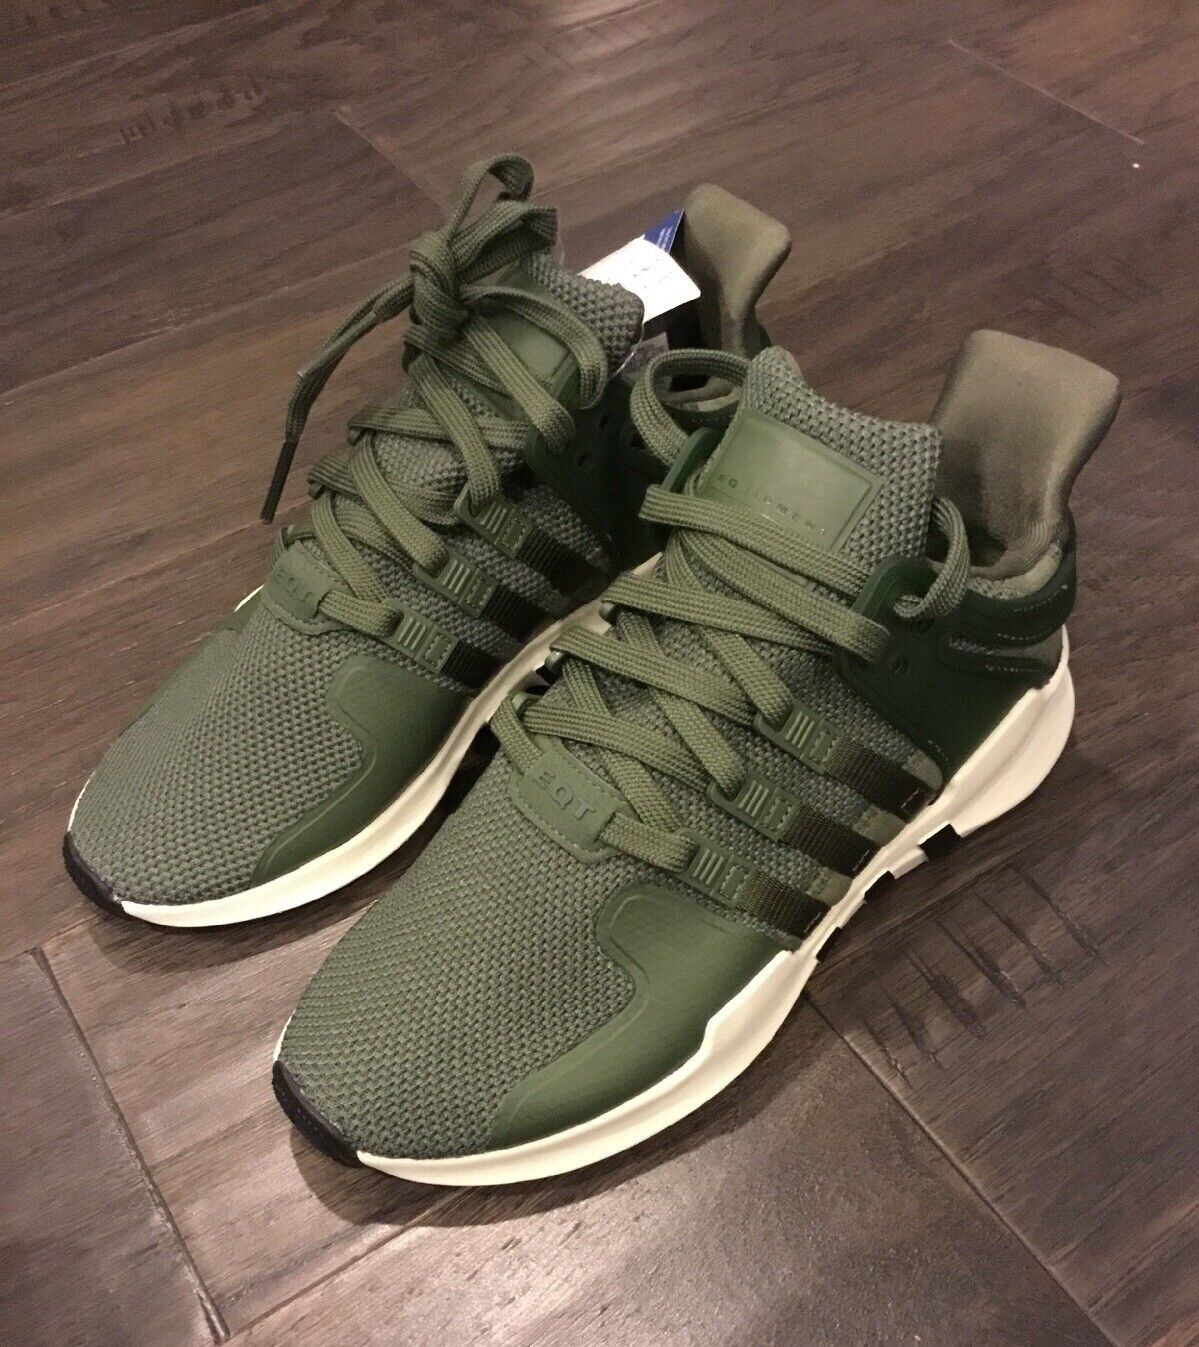 Women's Adidas EQT Support ADV W Runner shoes Sneakers CP9689 Size 6 New Green